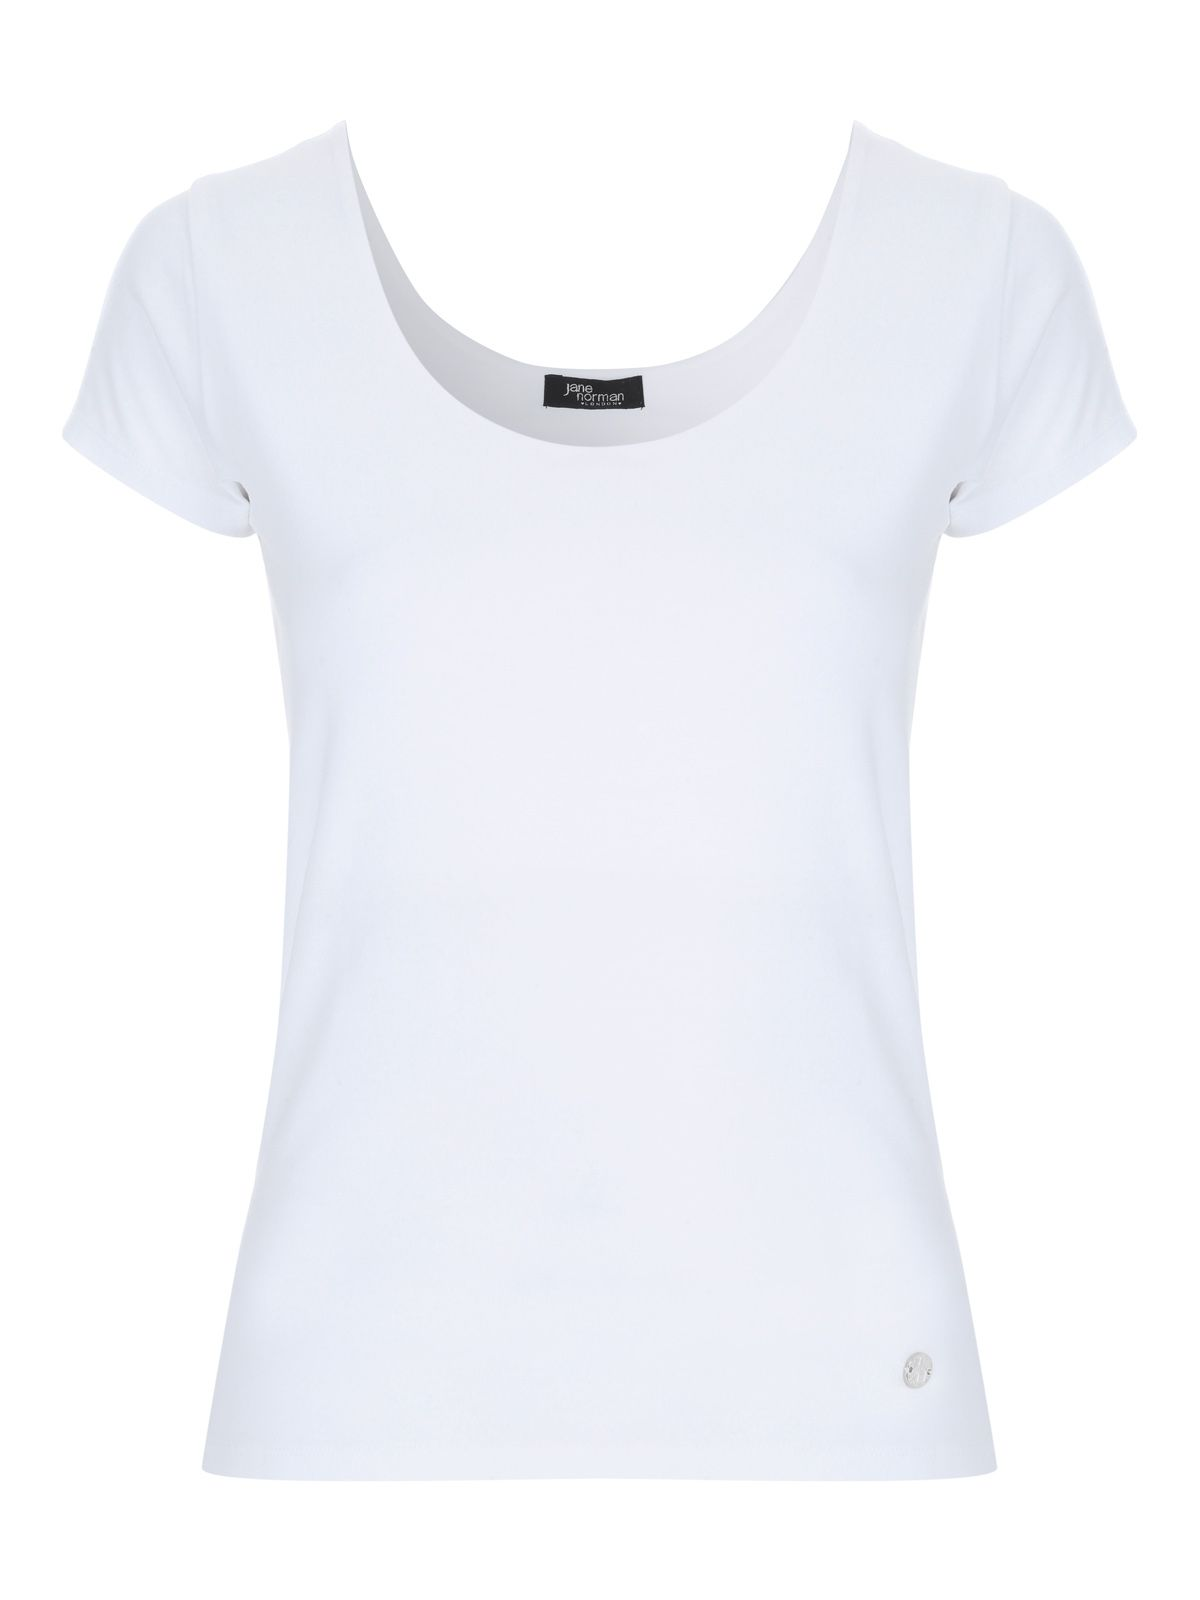 Jane Norman Bust Support T-Shirt, White